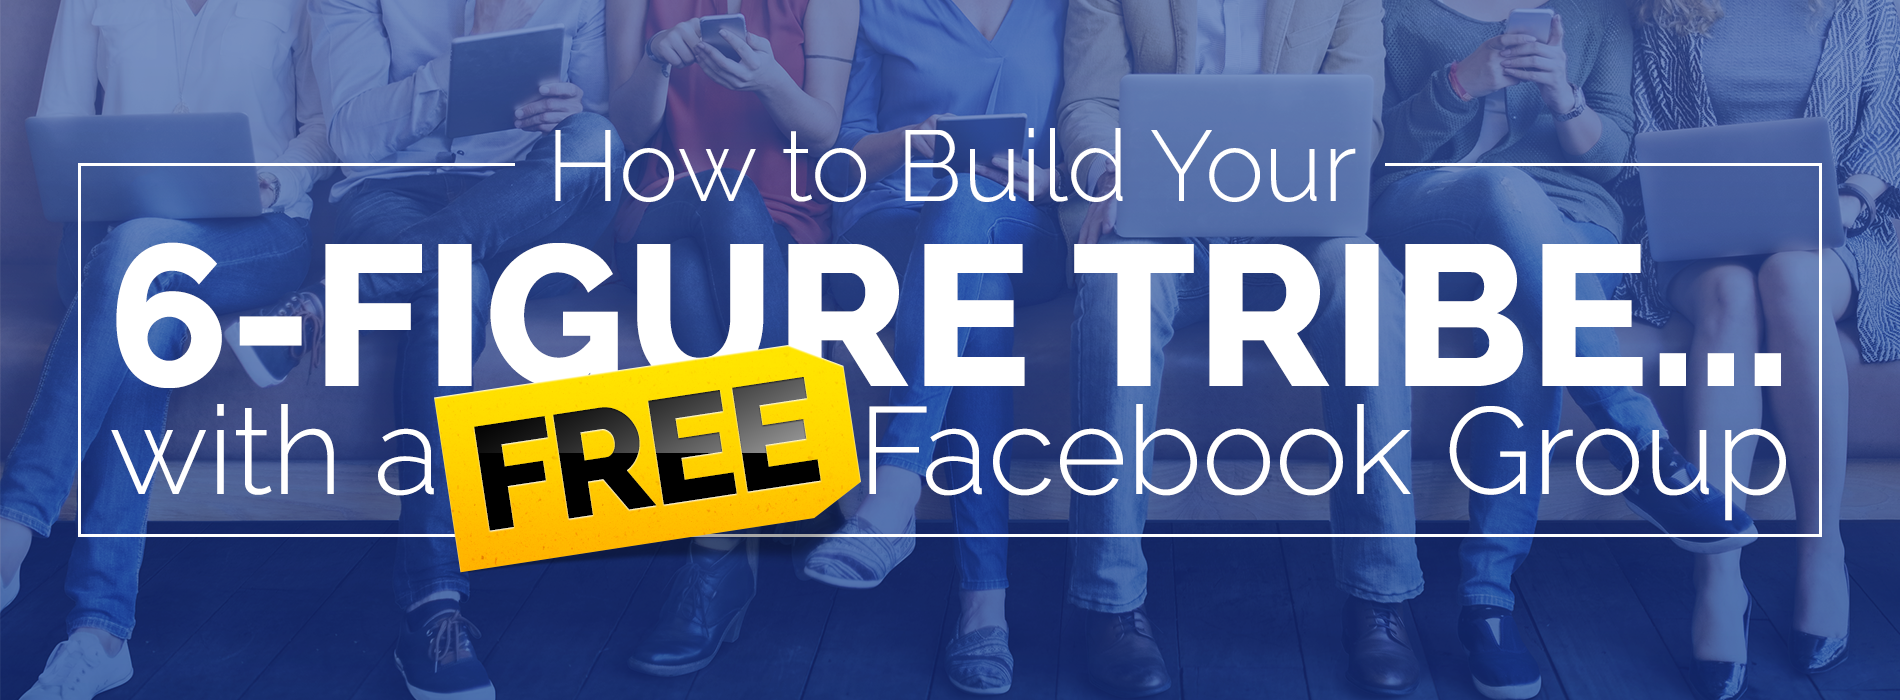 How to Build Your 6-Figure Tribe with a FREE Facebook Group